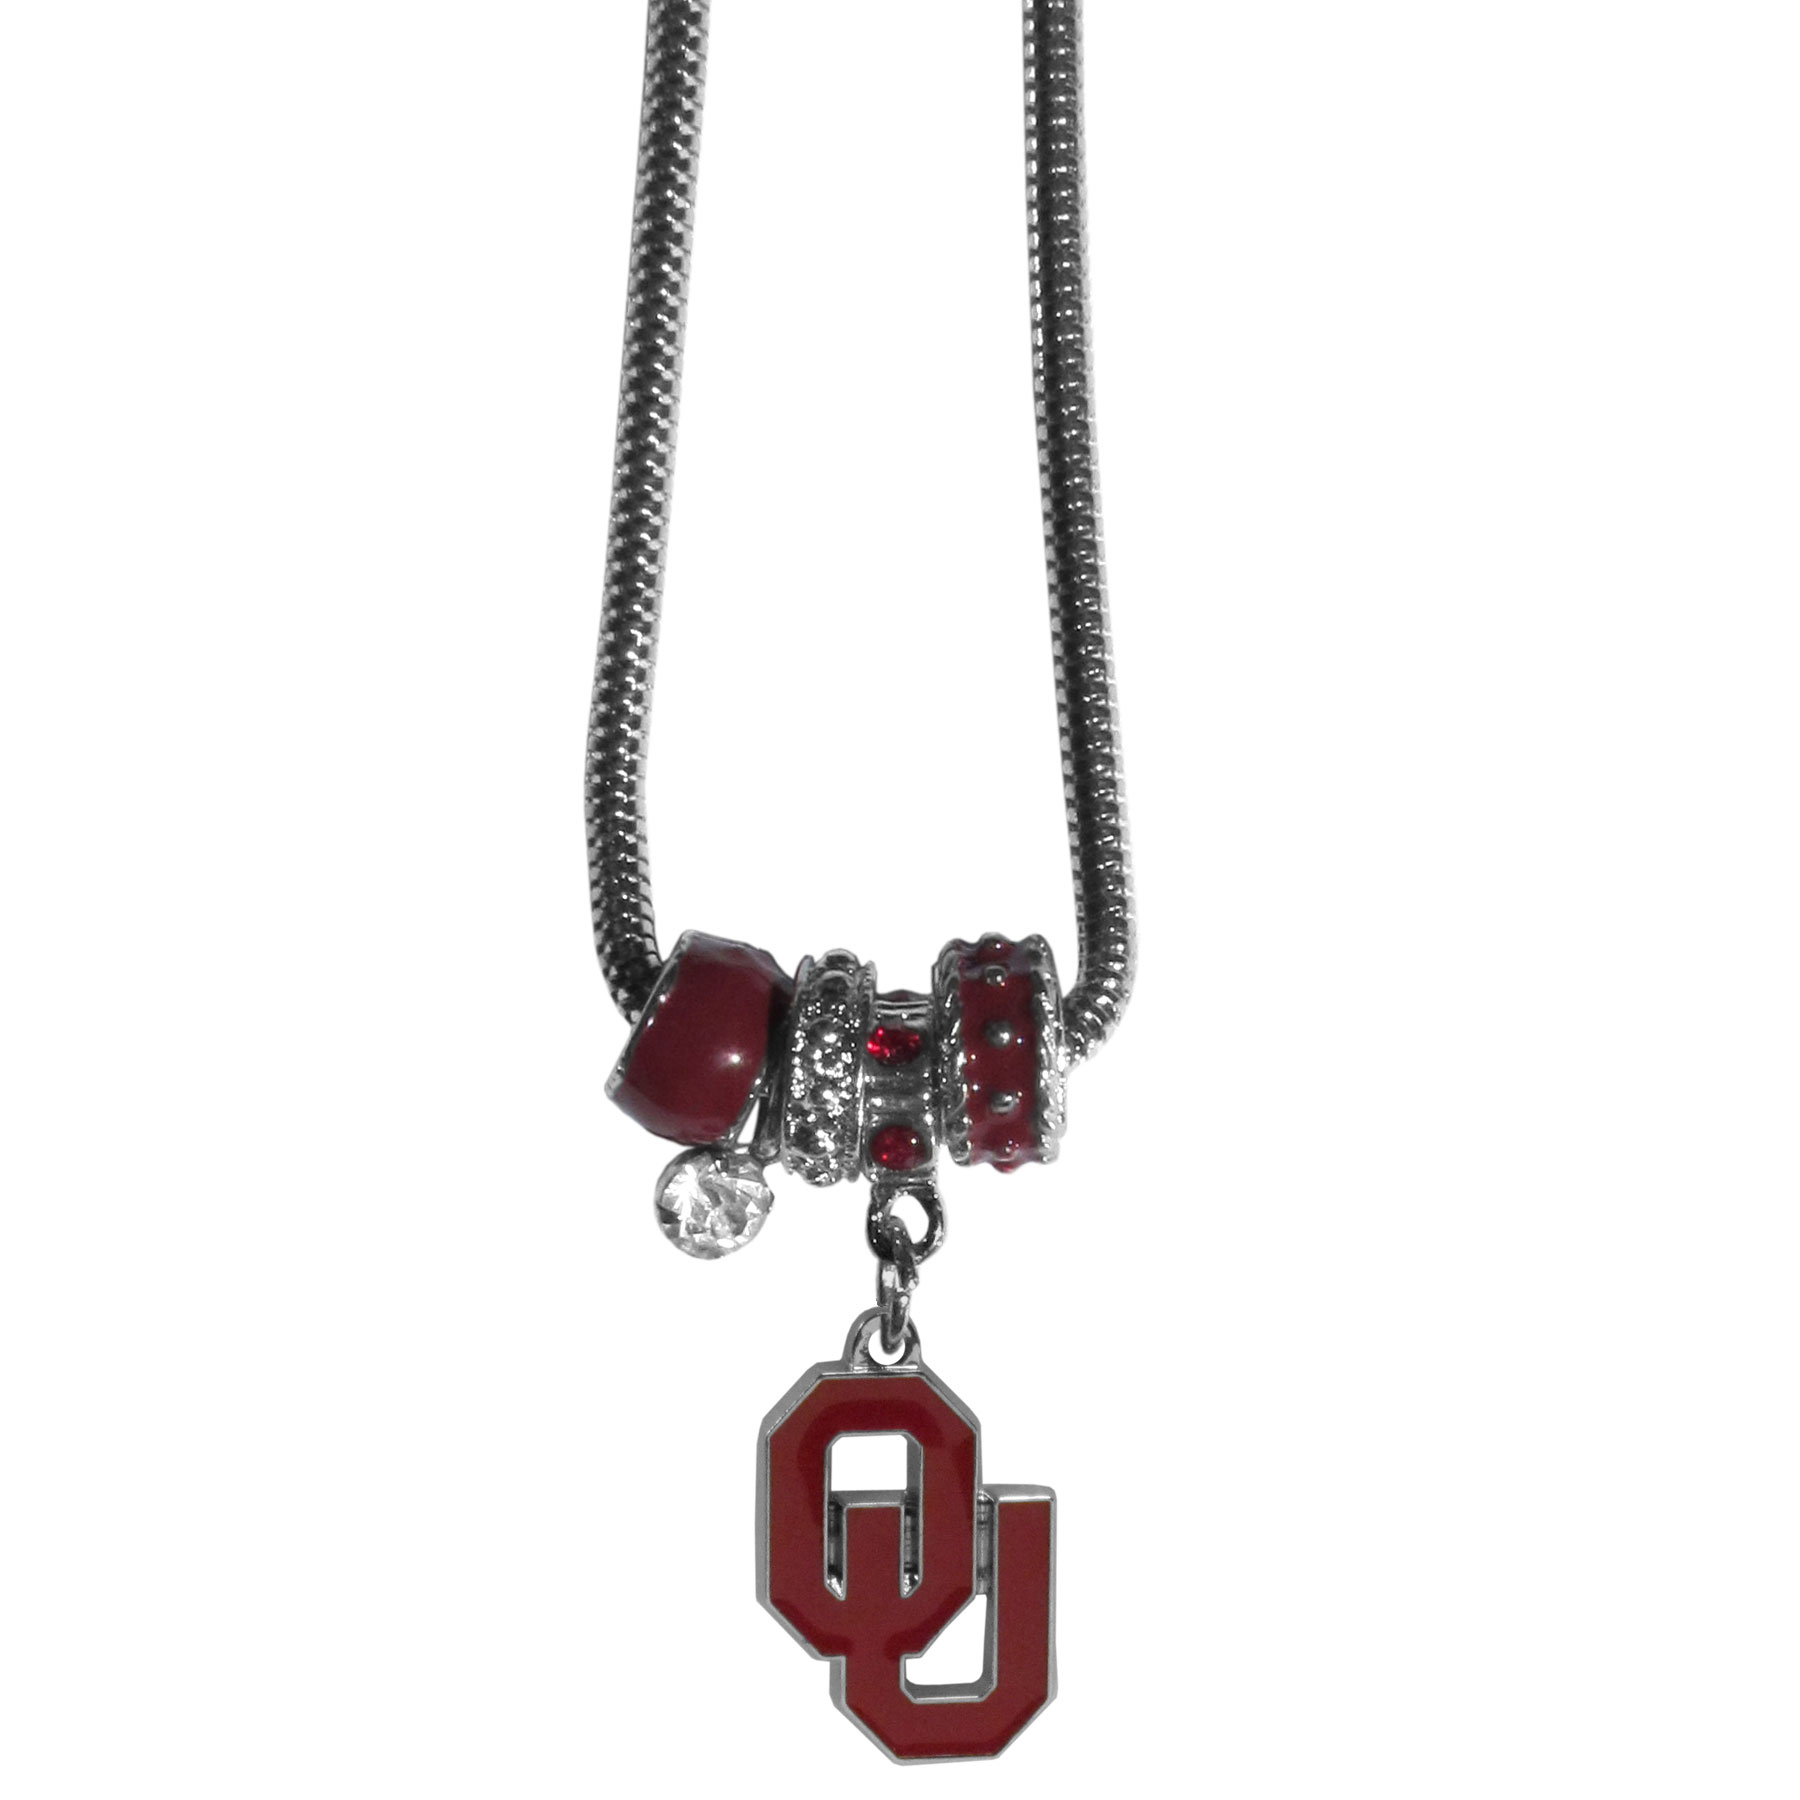 Oklahoma Sooners Euro Bead Necklace - We have combined the wildly popular Euro style beads with your favorite team to create our Oklahoma Sooners bead necklace. The 18 inch snake chain features 4 Euro beads with enameled team colors and rhinestone accents with a high polish, nickel free charm and rhinestone charm. Perfect way to show off your team pride.